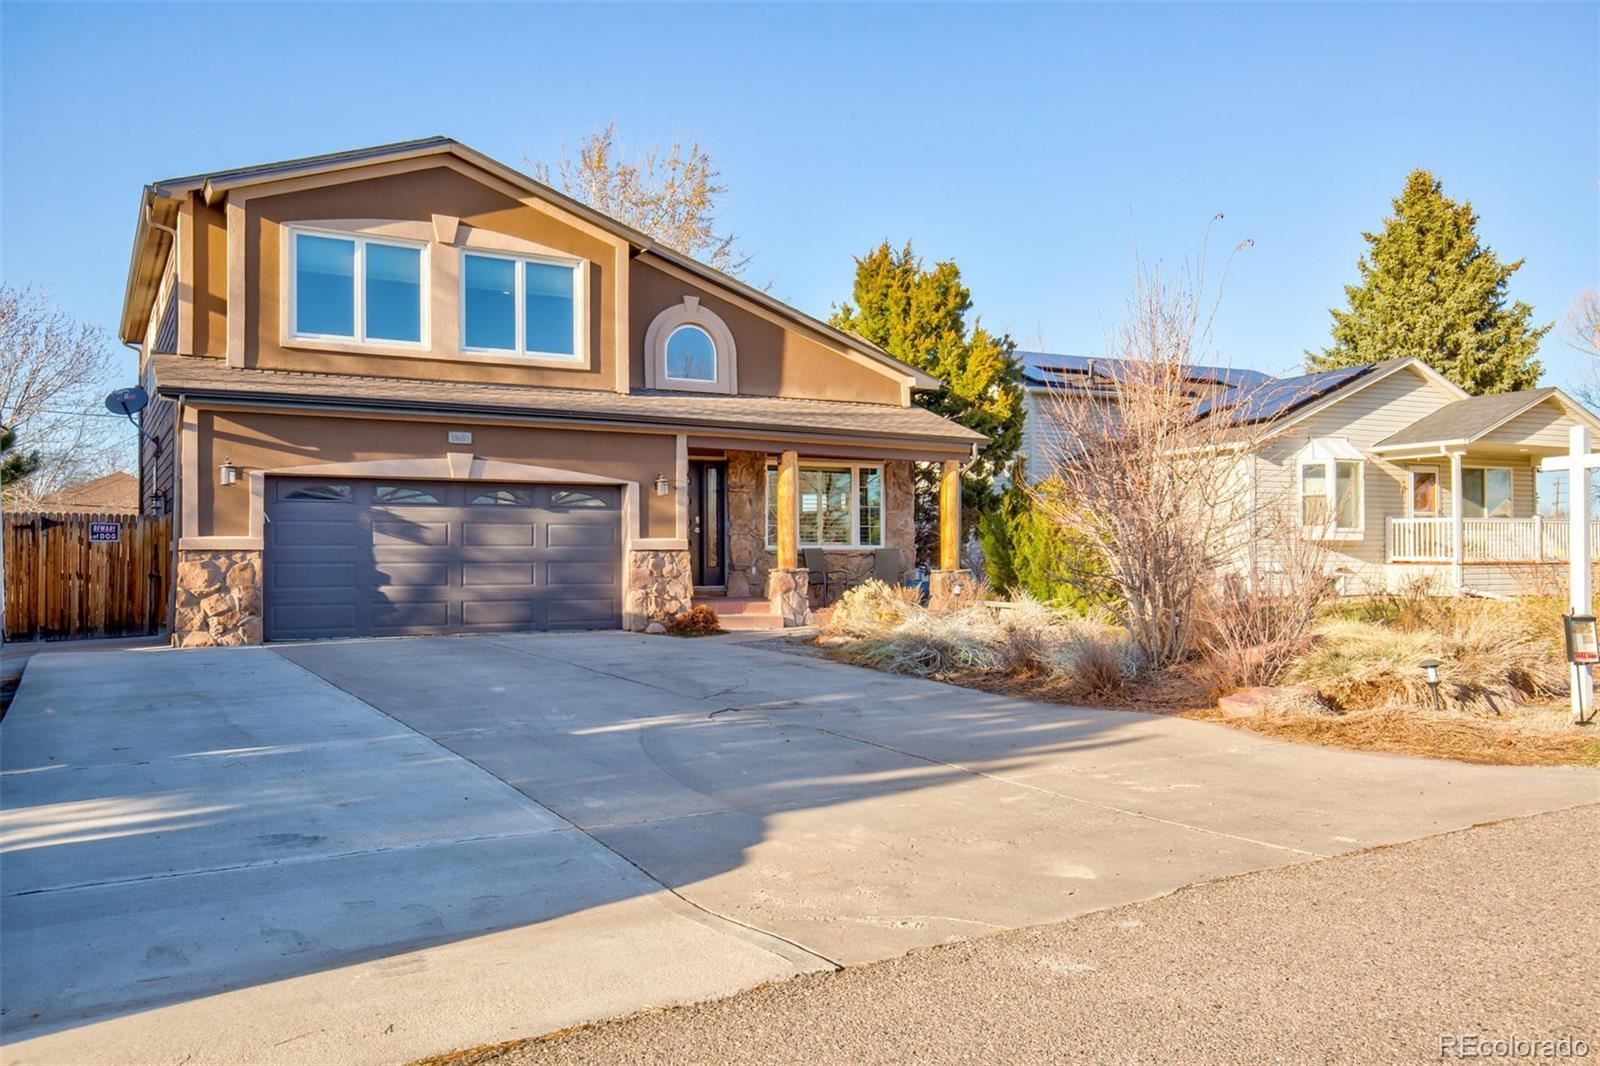 11655 W Security Avenue, Lakewood, CO 80401 - #: 2162973